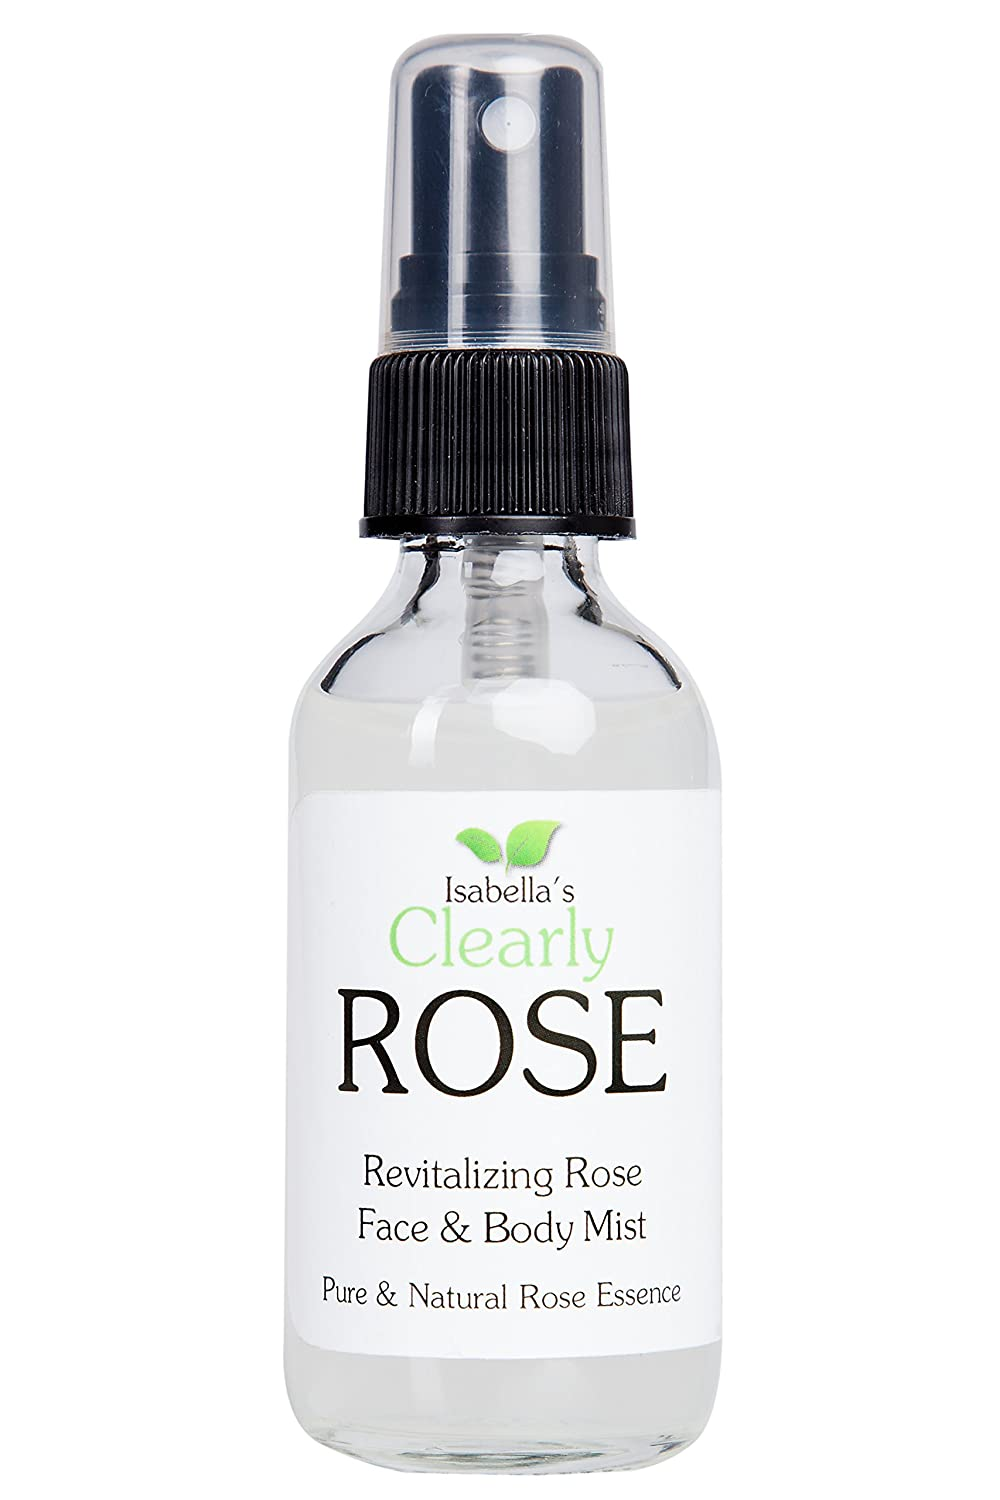 Isabella's Clearly ROSE, 100% Pure Rose Water, All Natural, Preservative Free, Additive Free. Facial Toner Spray, Body Mist, Linen Spray. Aromatherapy for Face, Hair, Body and Mind. 2 Oz Isabella' s Clearly ROSE 10005